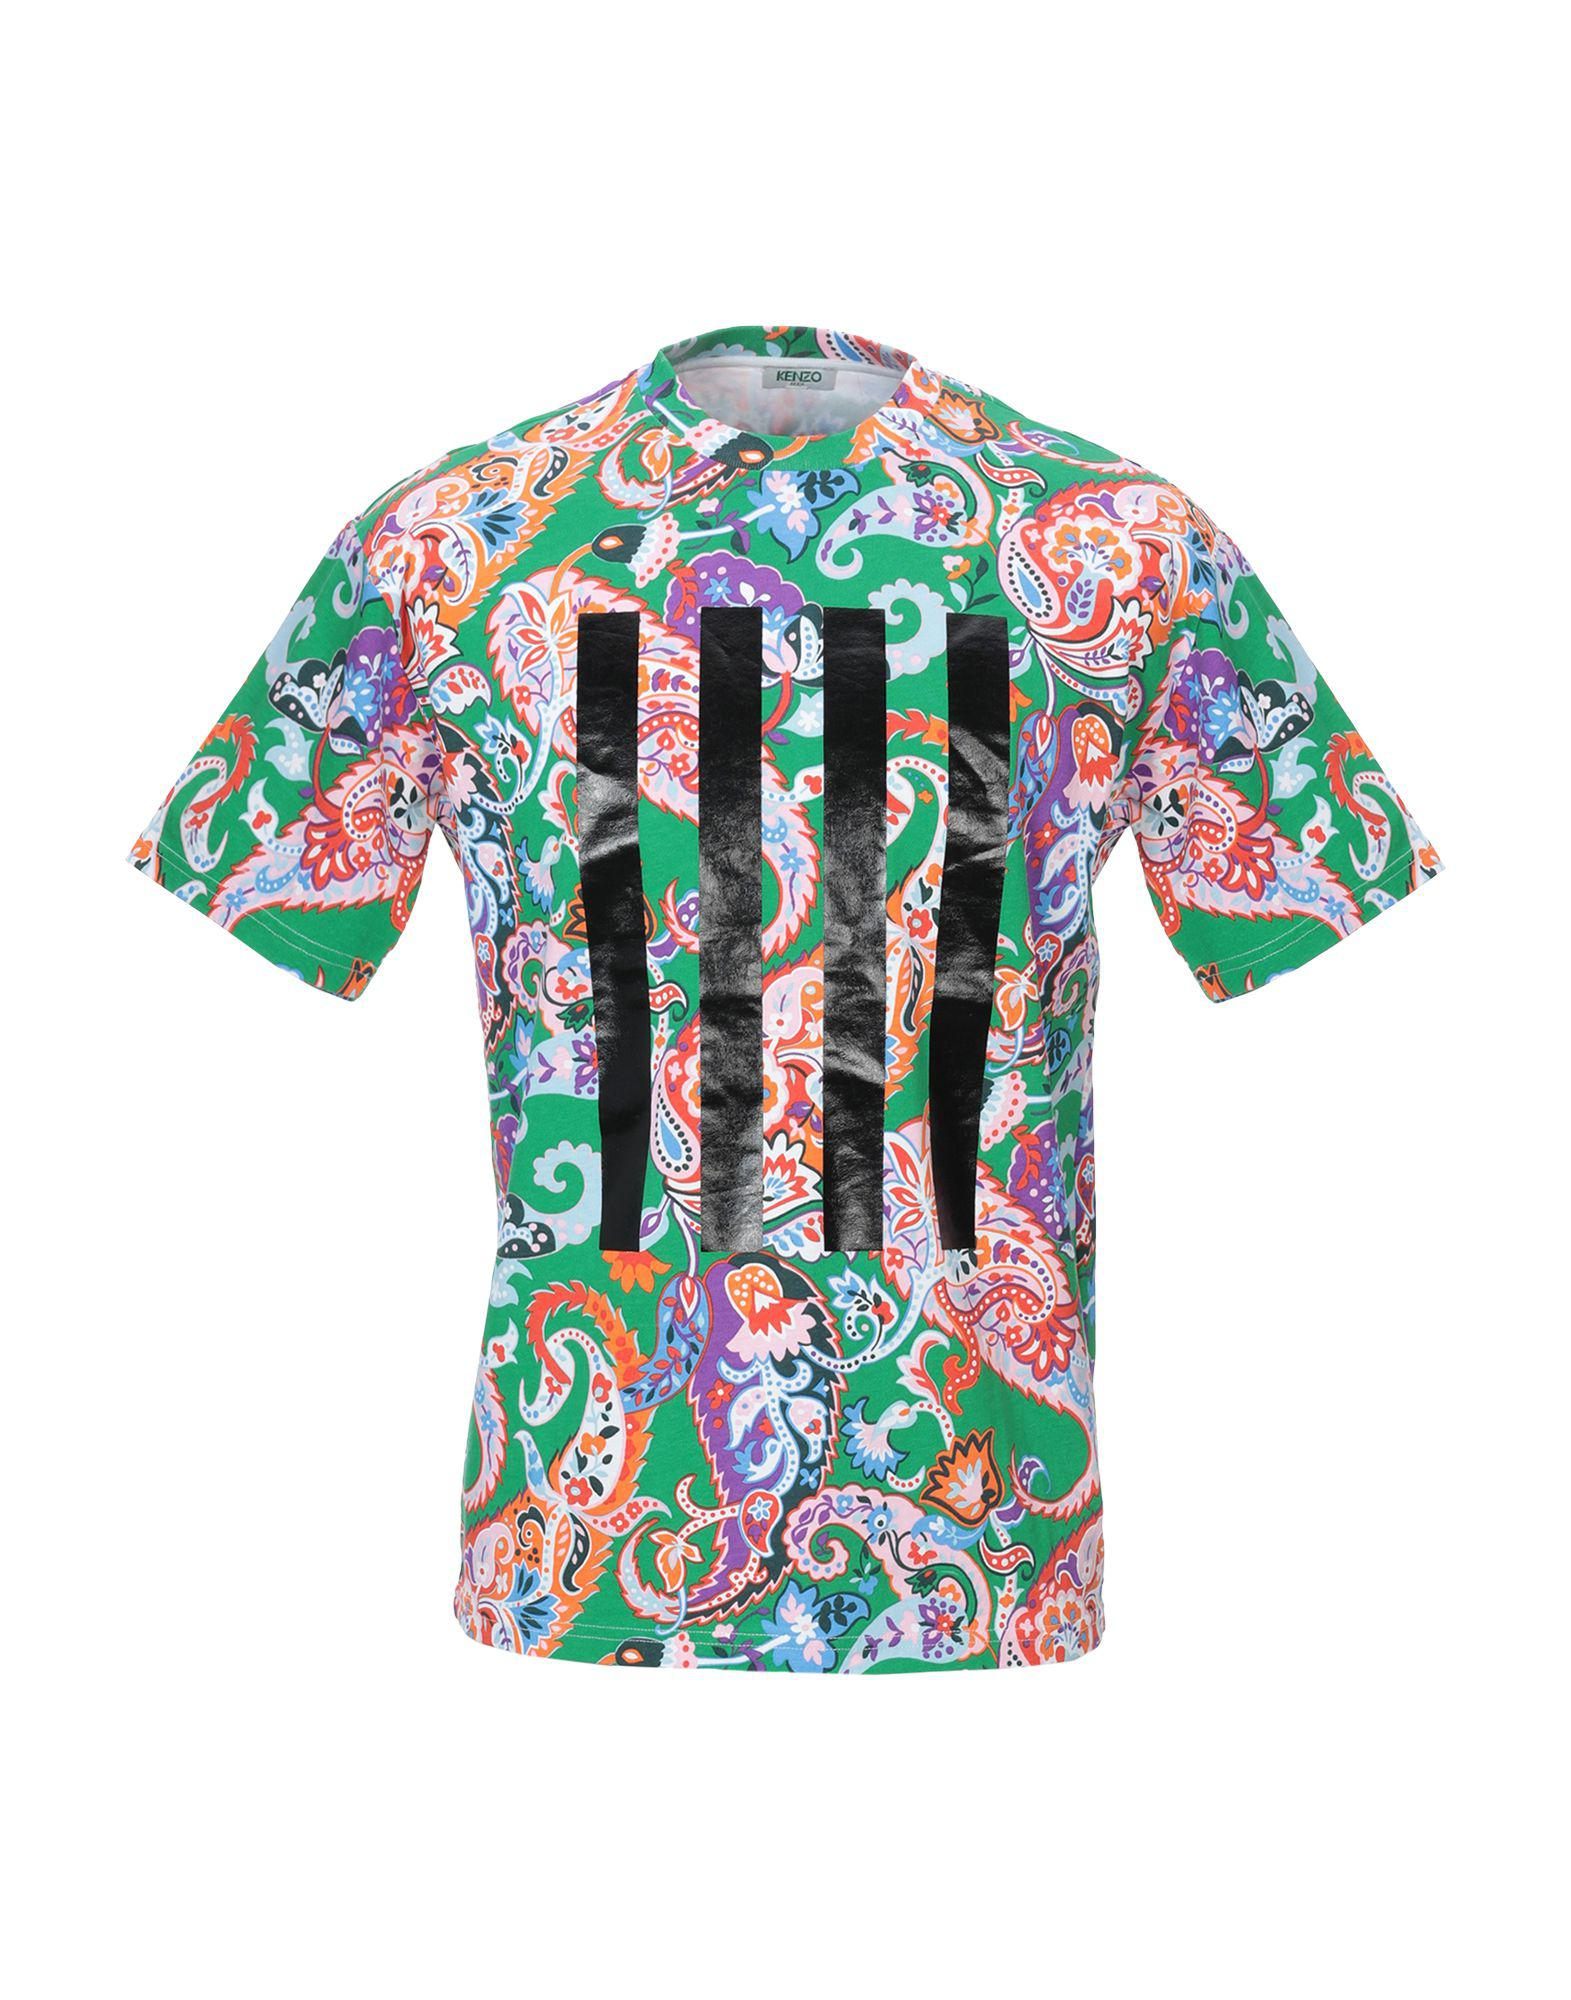 edce46497bfb Kenzo T-shirt in Green for Men - Lyst